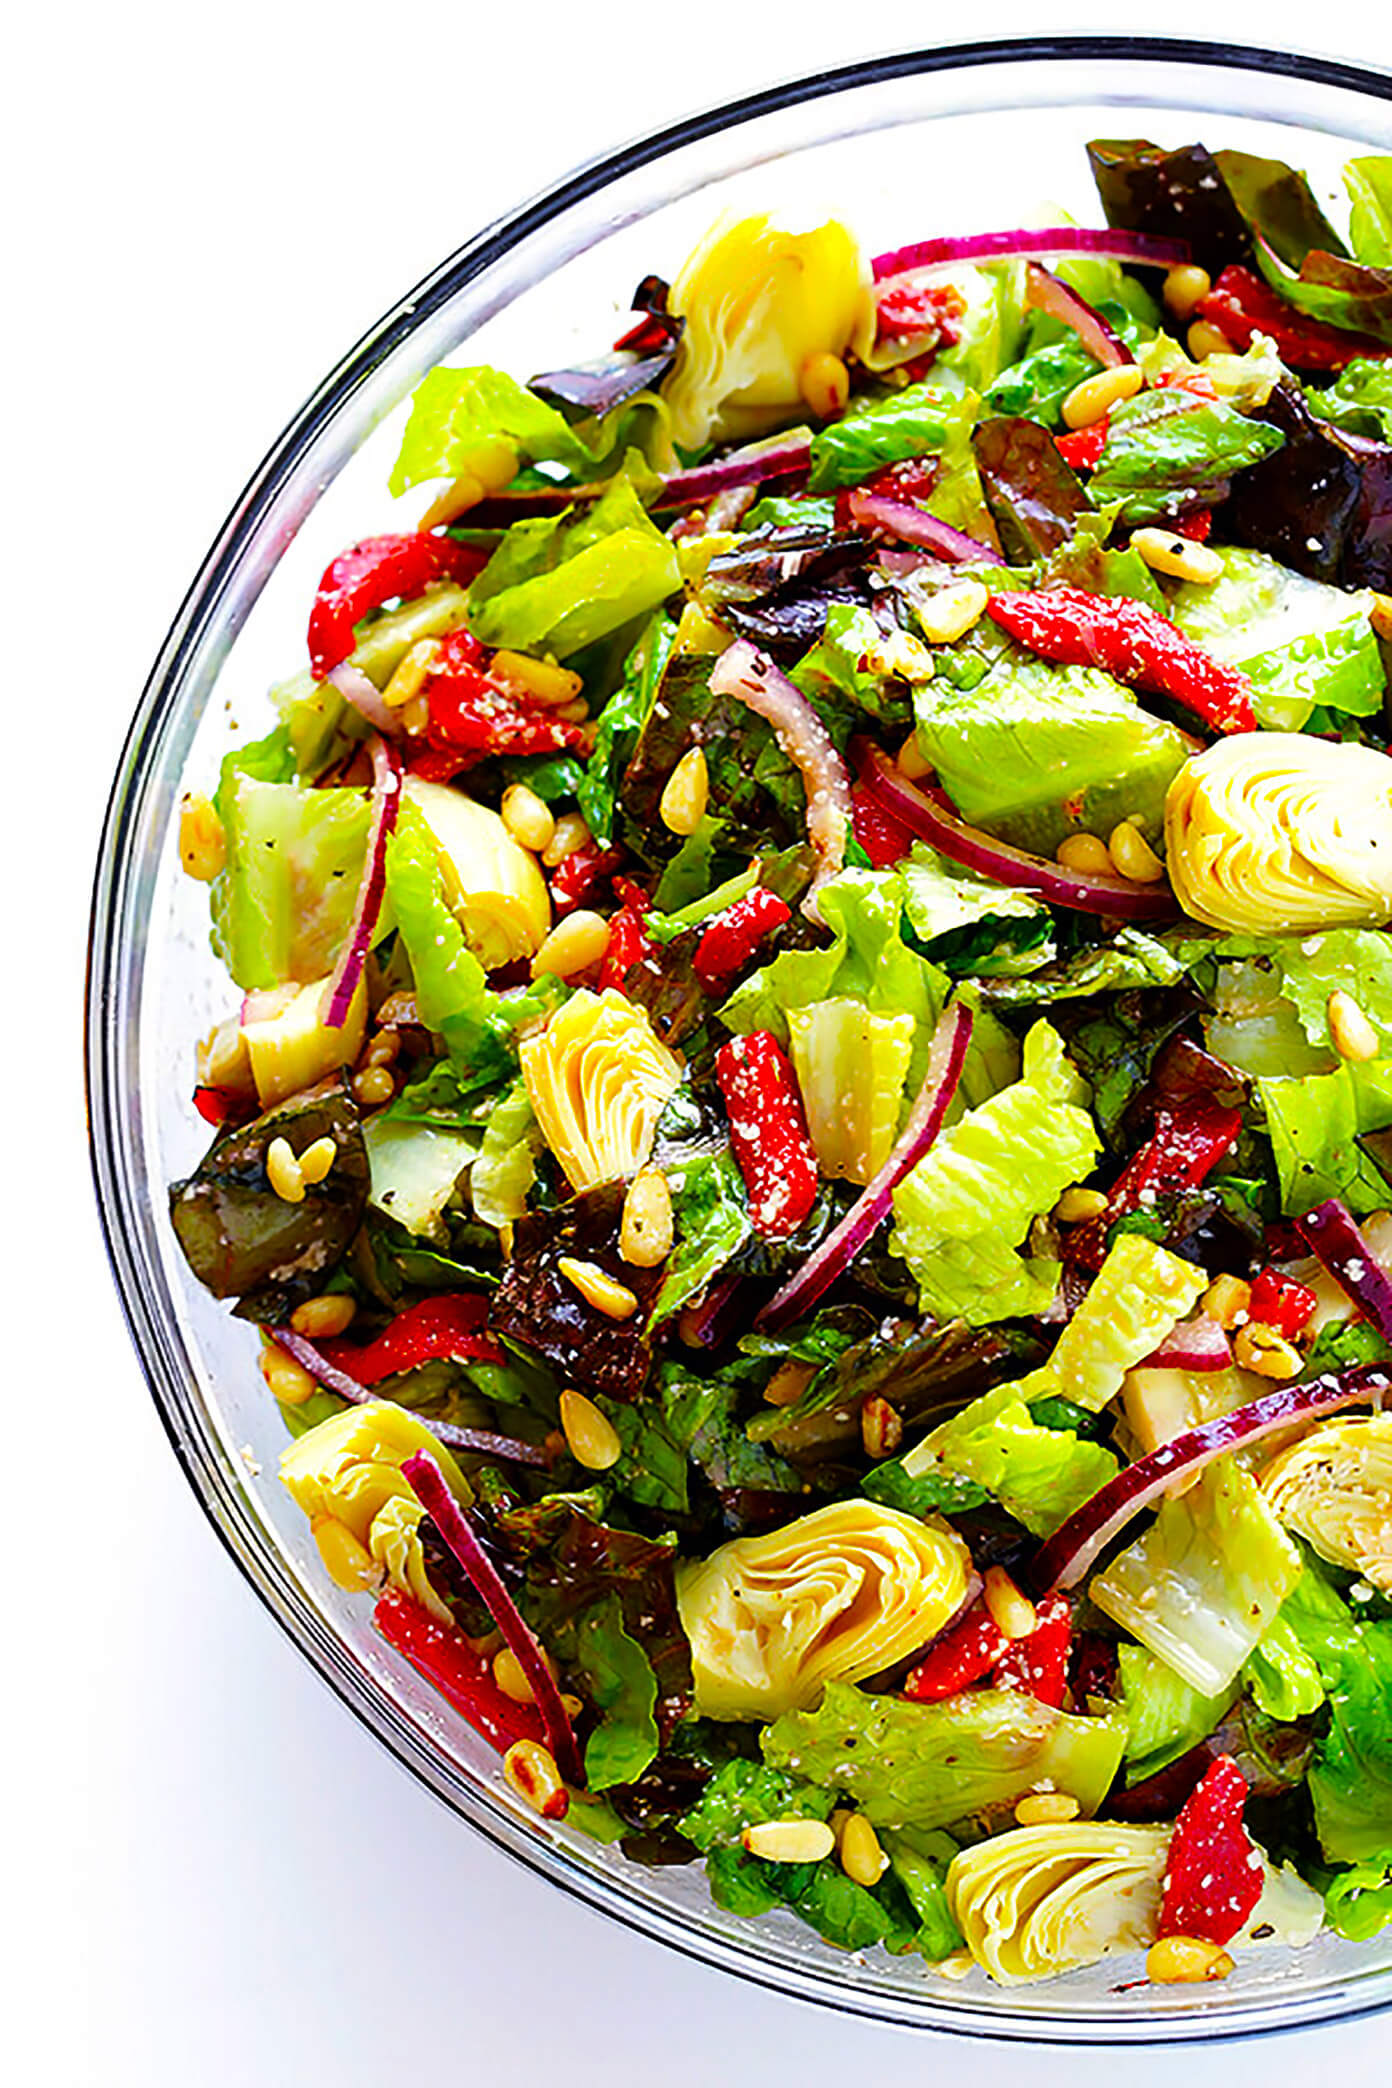 My family's favorite salad is always a crowd fave! It's made with lots of red leaf lettuce, artichokes, red onion, roasted red pepper, toasted pine nuts, and a delicious Italian-Parmesan vinaigrette.